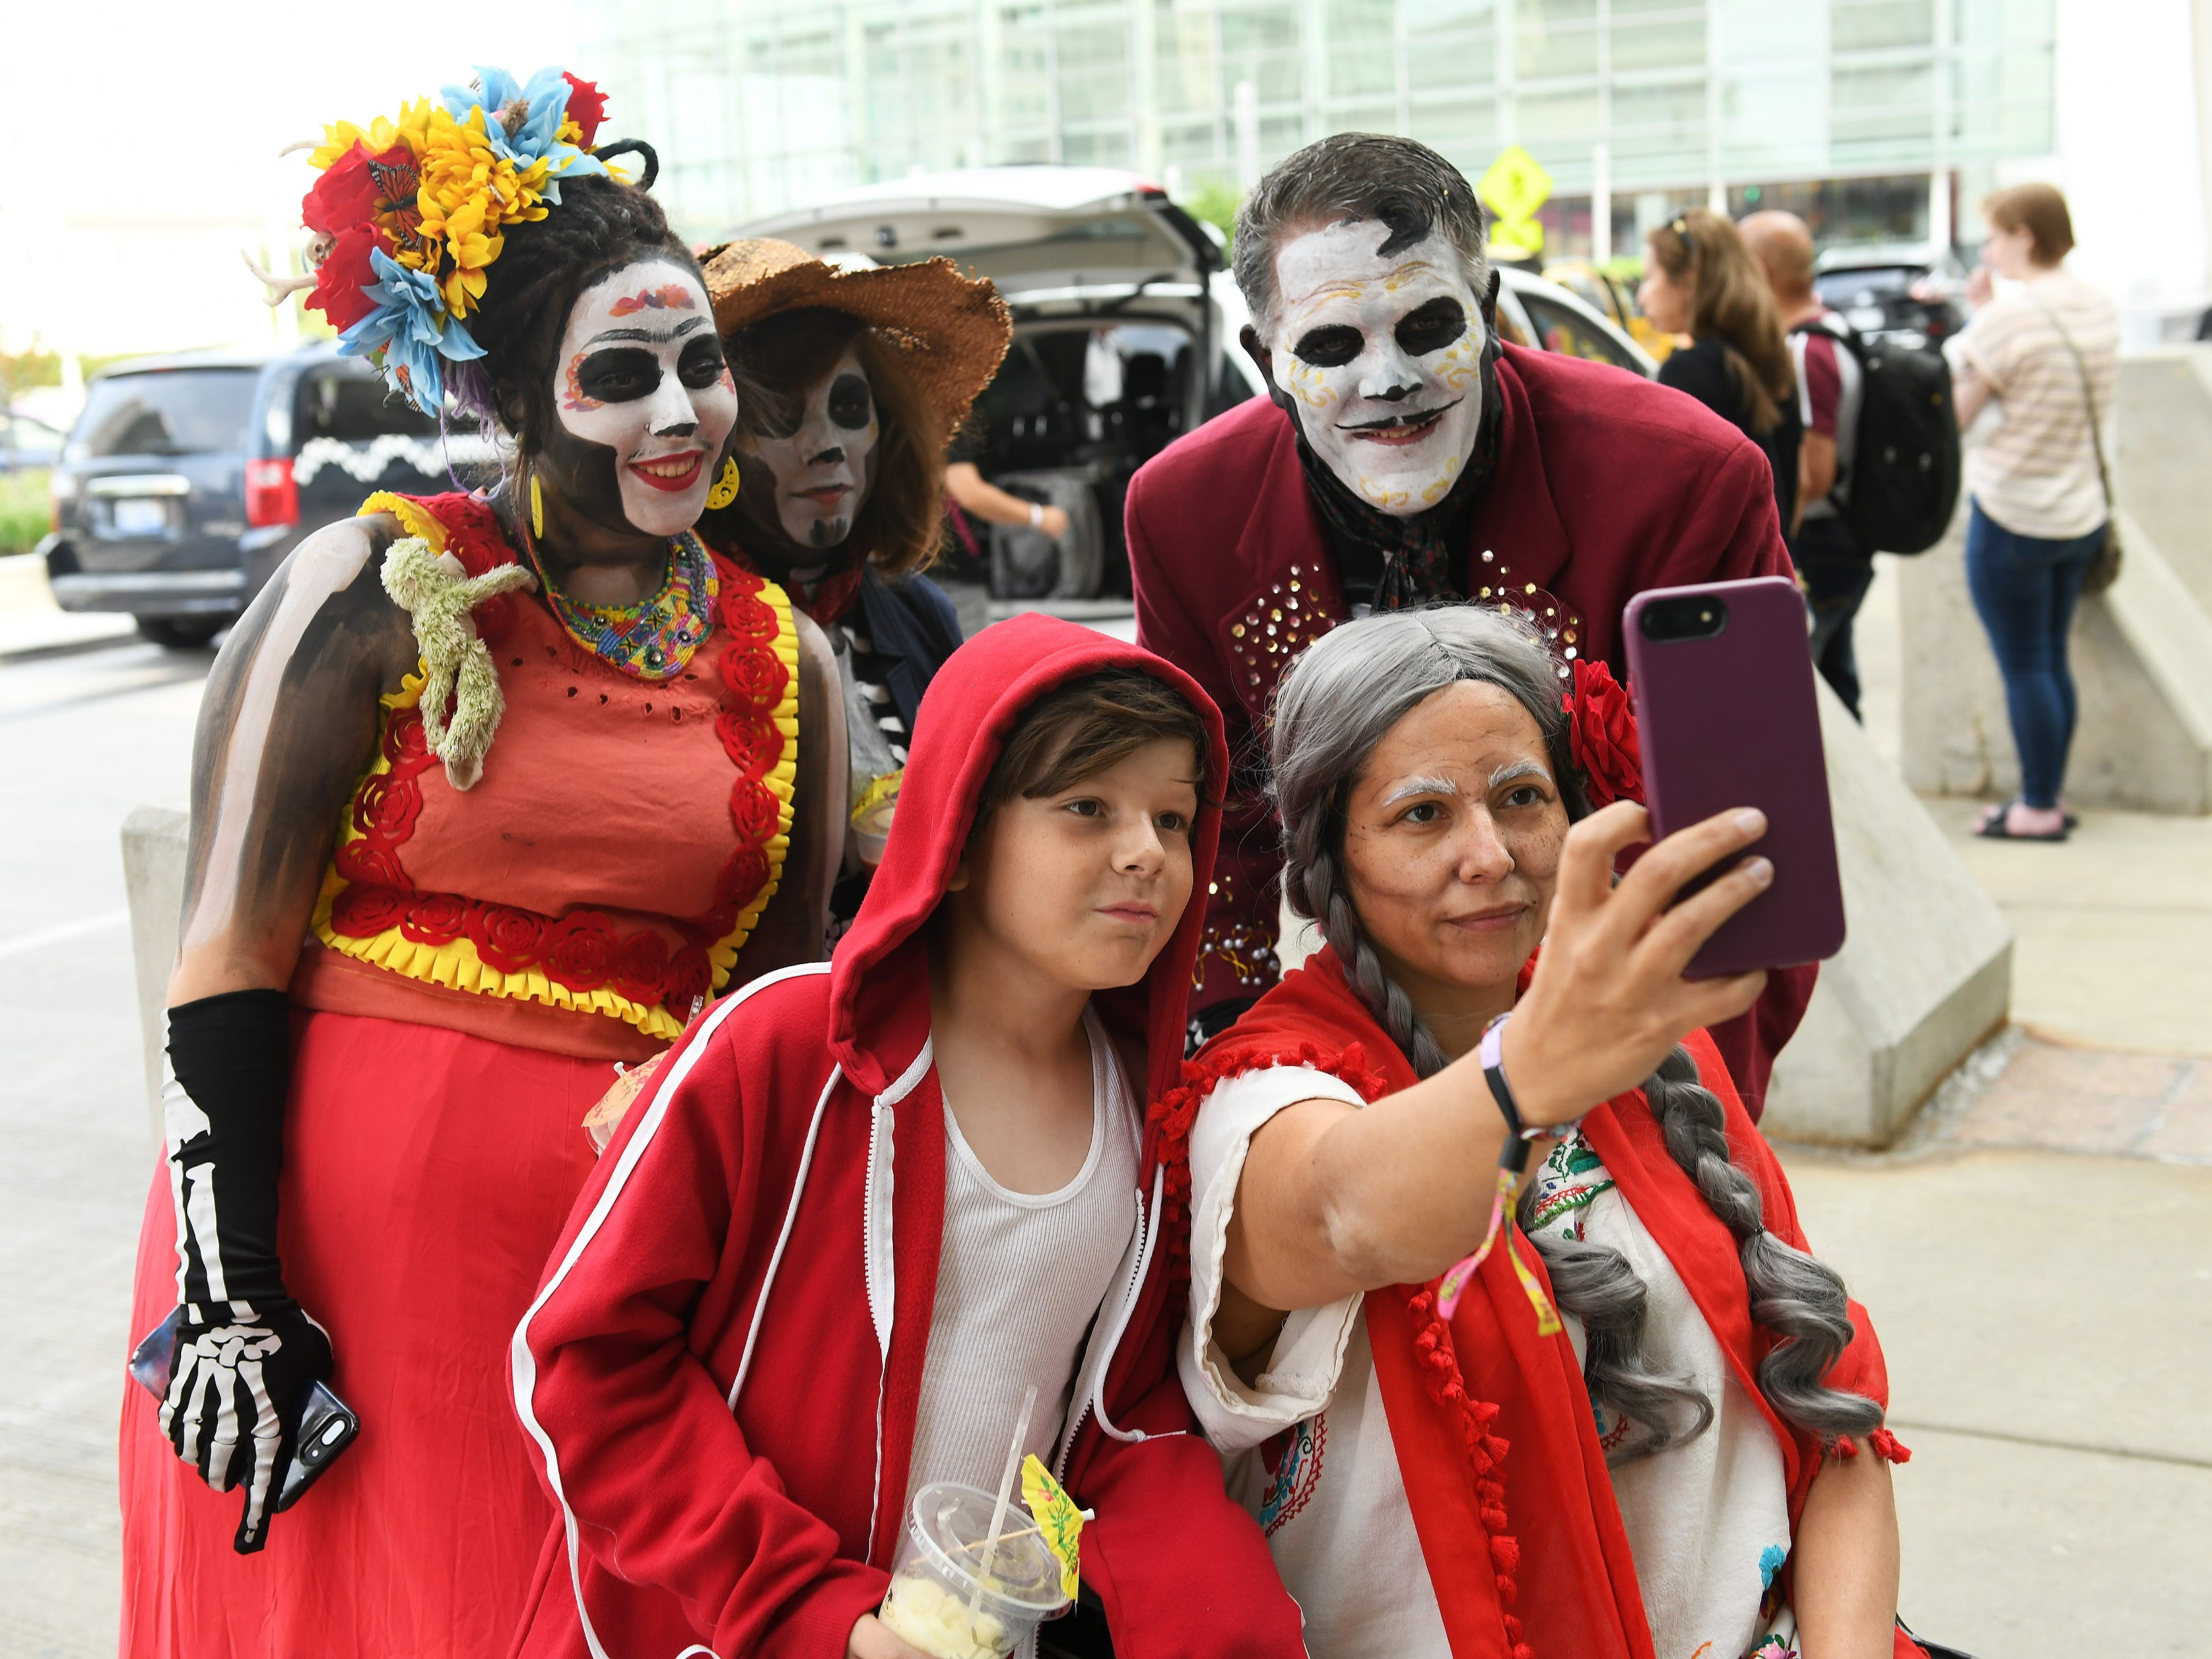 "The Shelton family from Bruce Township are dressed as characters from the movie ""Coco"" take a selfie at the Michigan Comic Con. The Shelton family is Josette, 42, as ""Mama Coco"", front right, Elisha, 9, as ""Miguel"" front left, and in back from left, Rica, 19, as Frida Kahlo, Reina, 13, as ""Hector"", Charlie, 44, as ""Ernesto de la Cruz."""